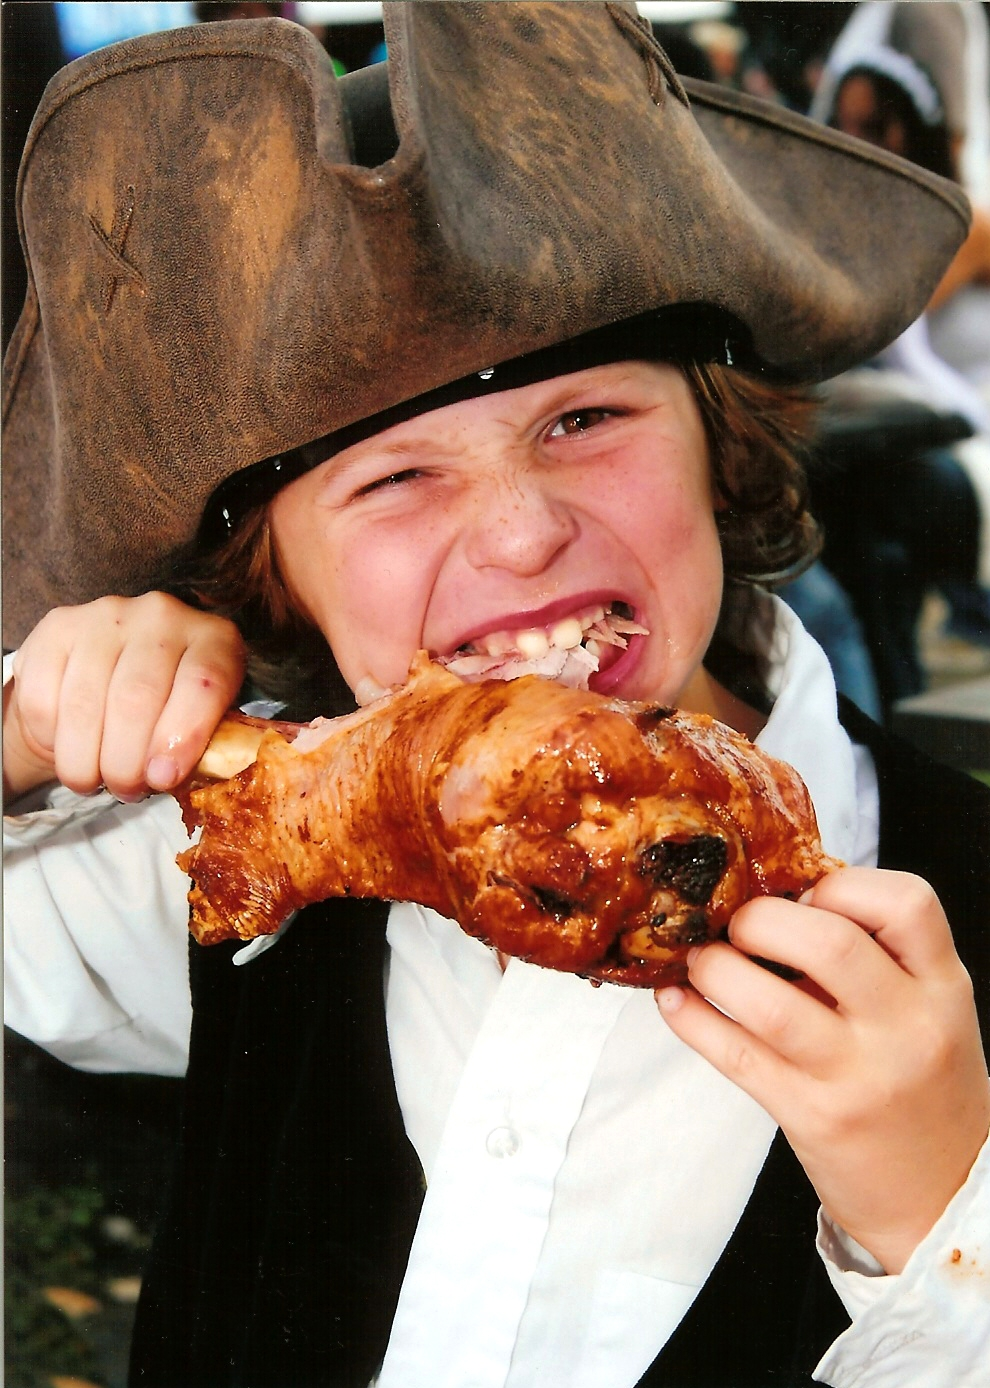 Shiver me tudors pirates of the renaissance around the for What do people eat on thanksgiving